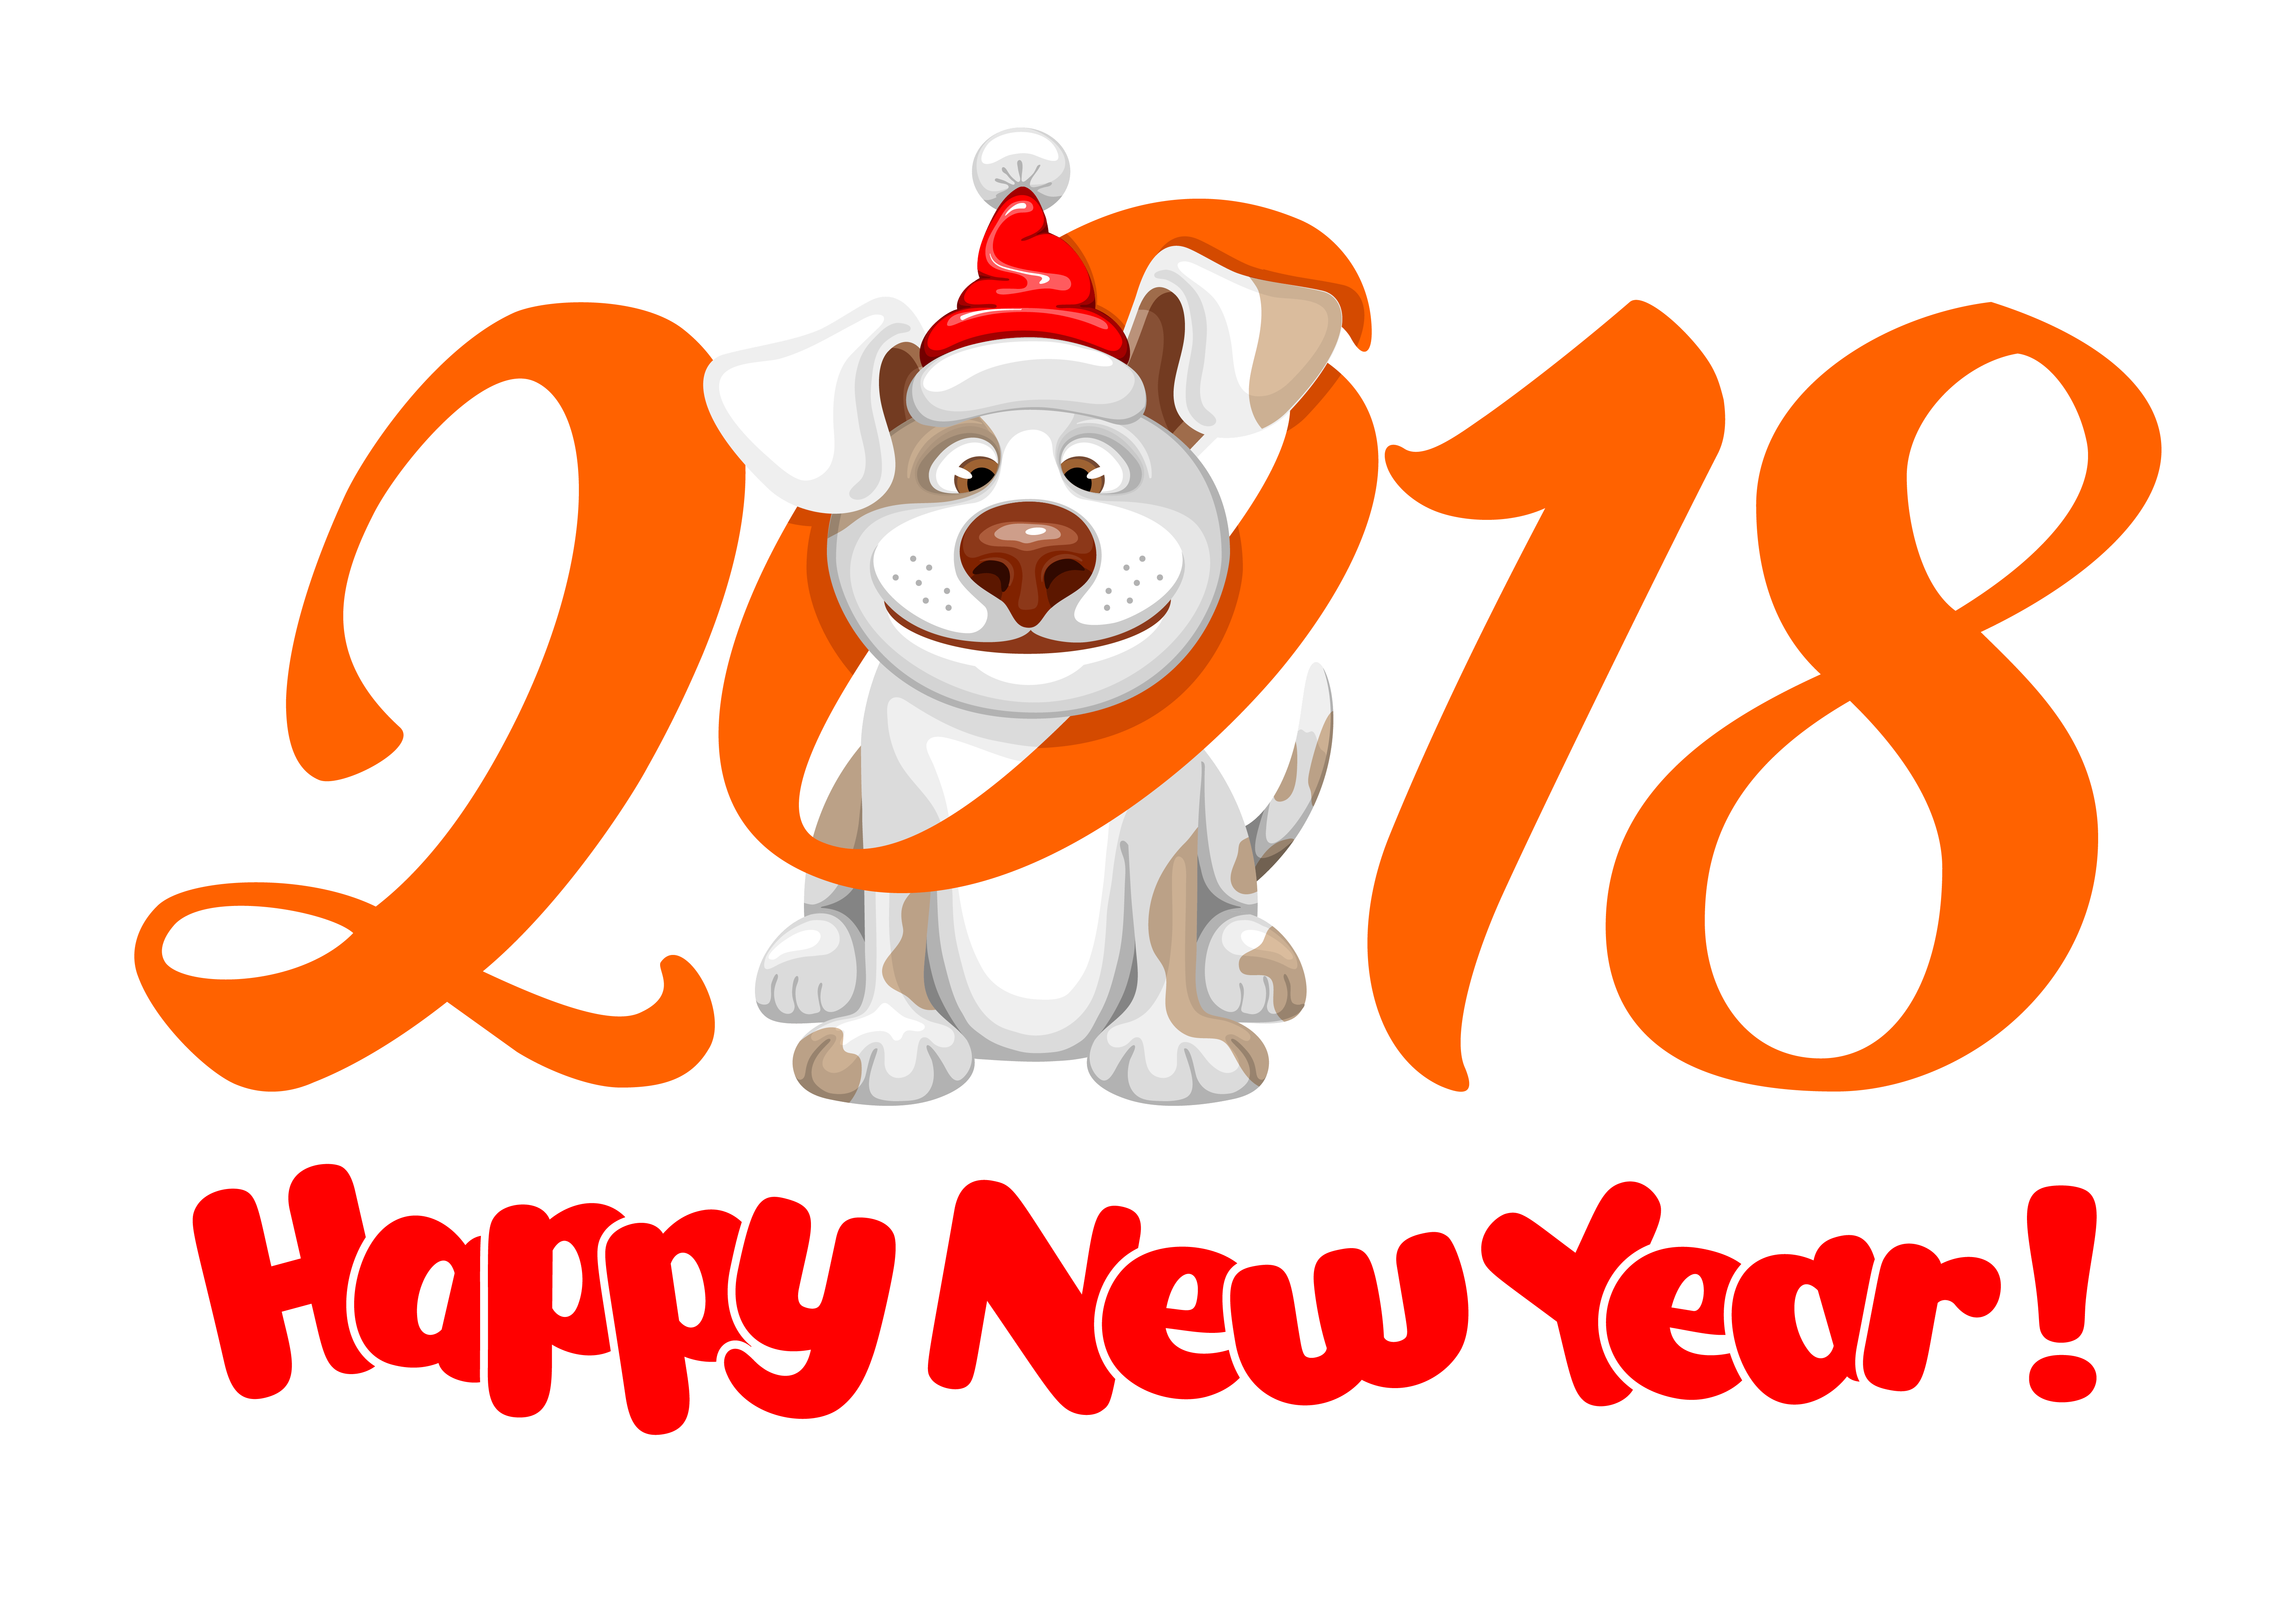 2018 Happy New Year PNG Image.